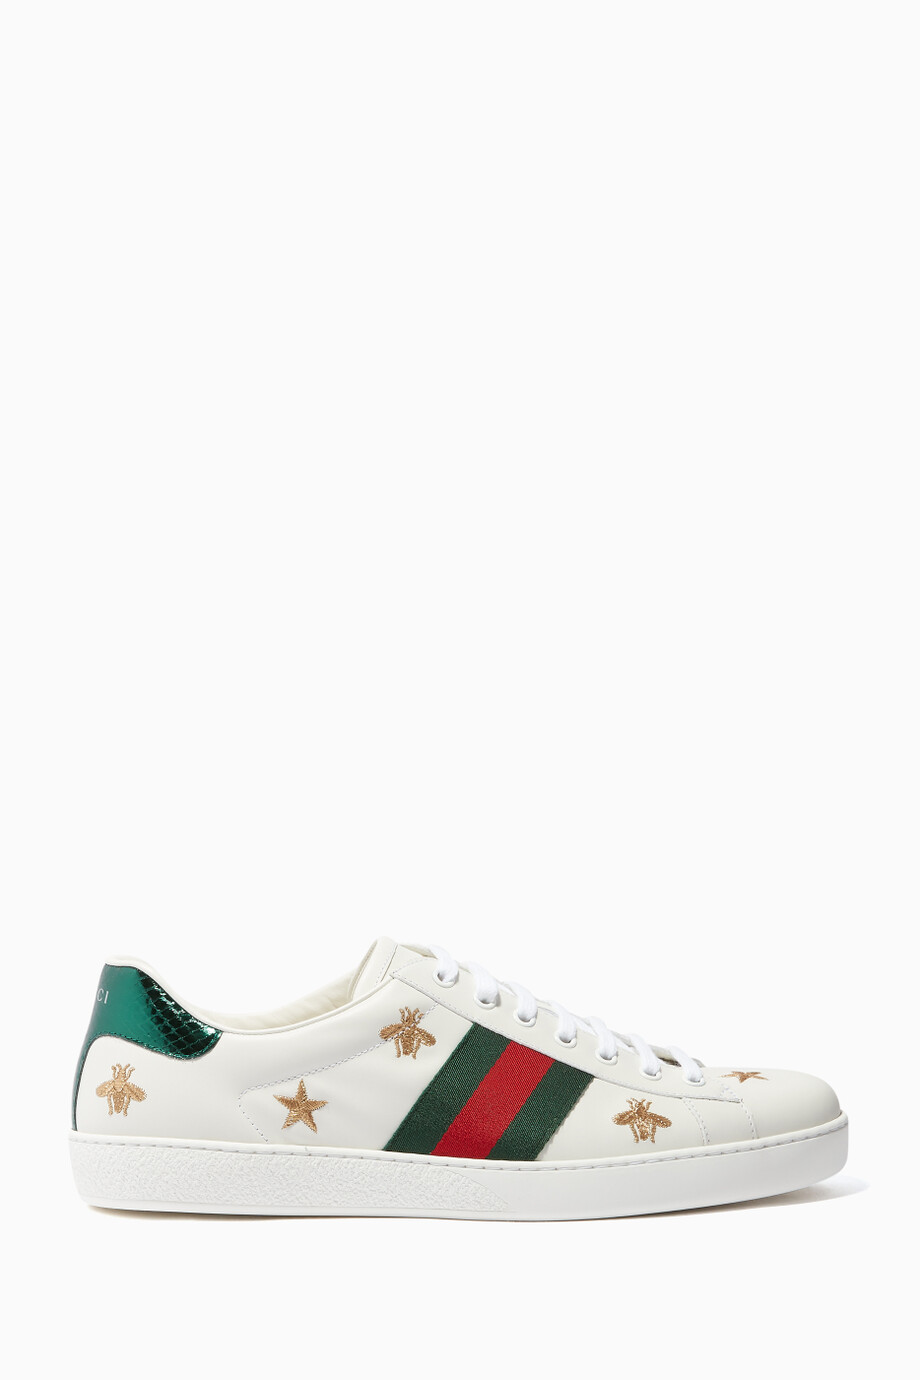 a46077613 MenShoesSneakersLow Top. White Leather Ace Star & Bee-Embroidered Sneakers  ...